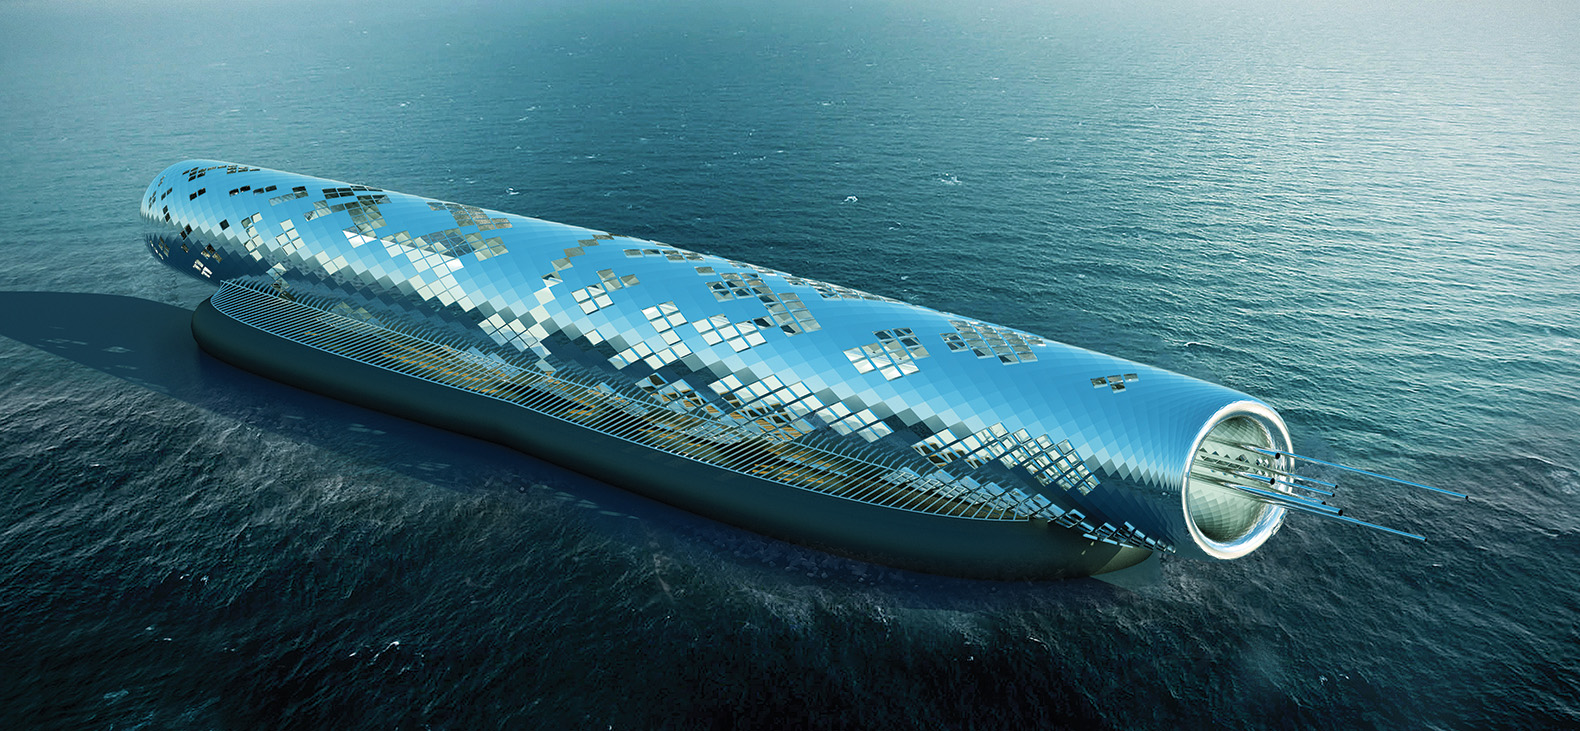 Solar-powered Pipe desalinizes 1.5 billion gallons of drinking water for California